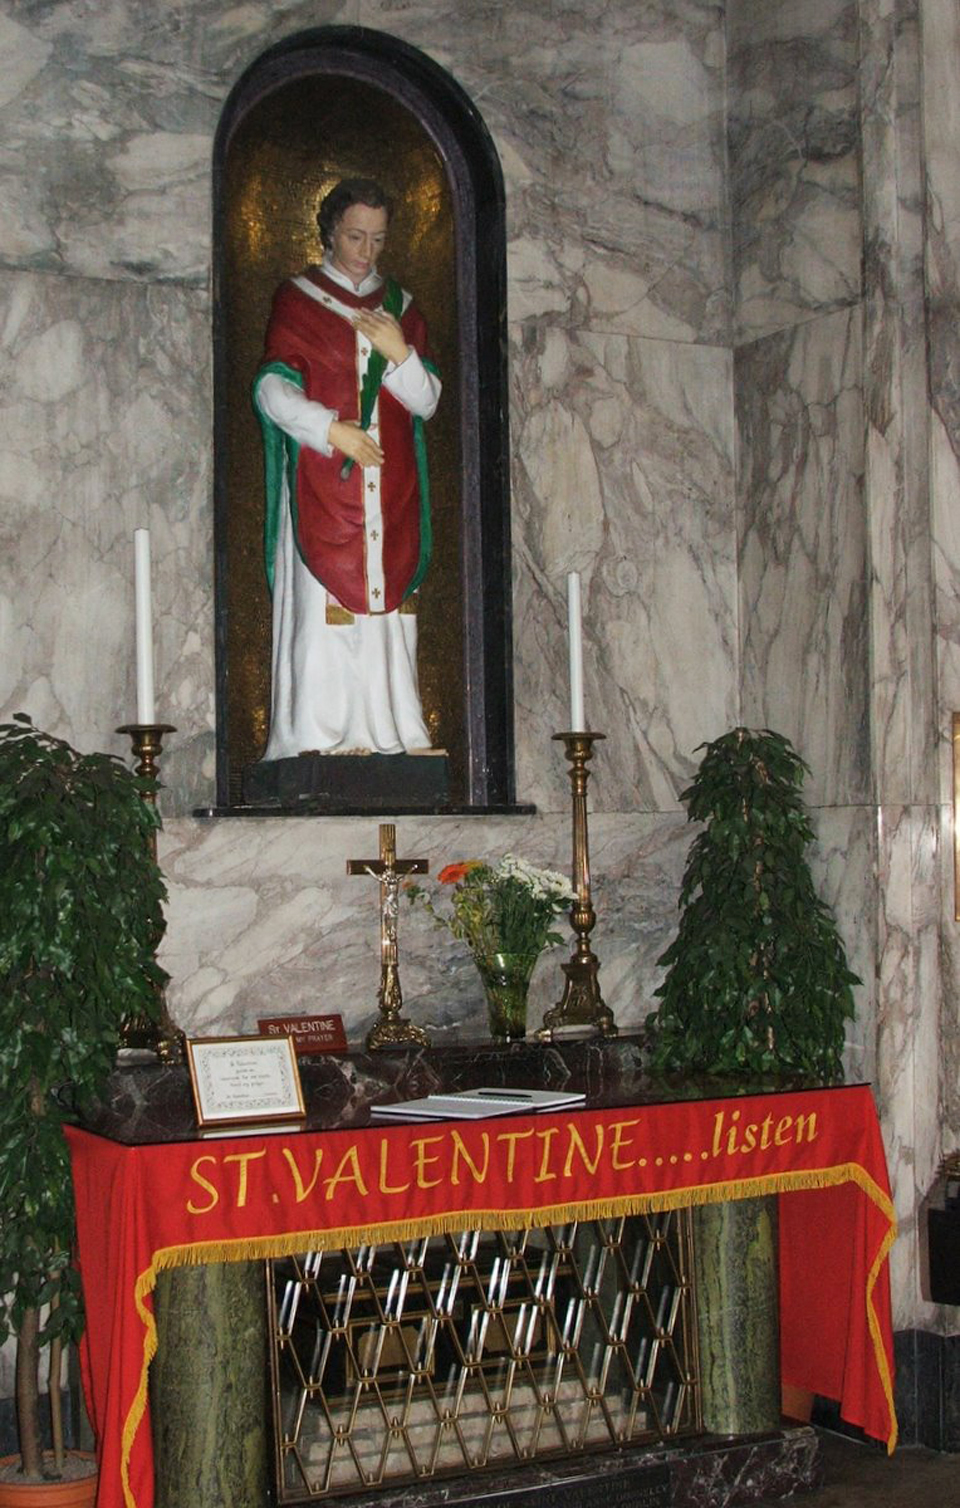 The reliquary of St. Valentine's remains may still be visited today in the Whitefriars Street Church in Dublin.